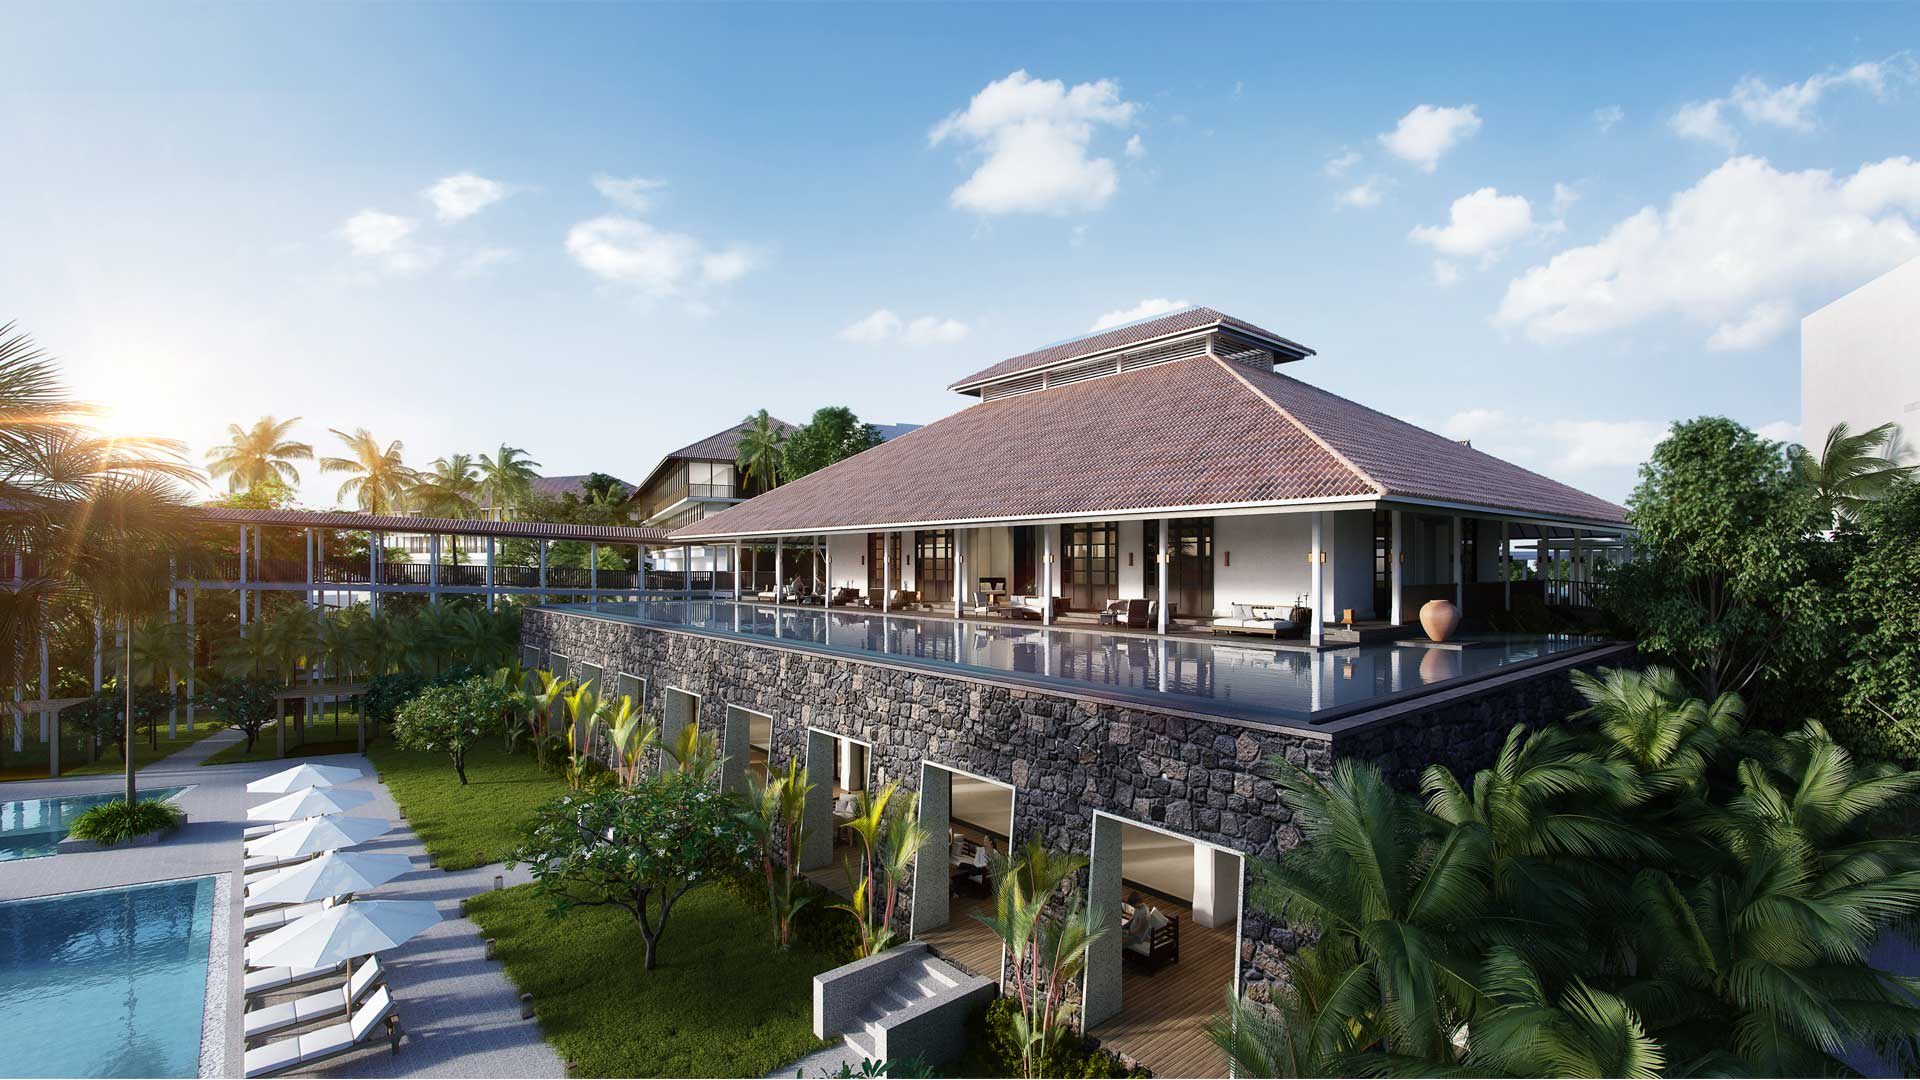 https://assets.anantara.com/image/upload/q_auto/media/minor/anantara/images/anantara-desaru-coast-resort-villas/the-resort/anantara_desaru_coast_homepage_desktop_banner_1920x1080.jpg